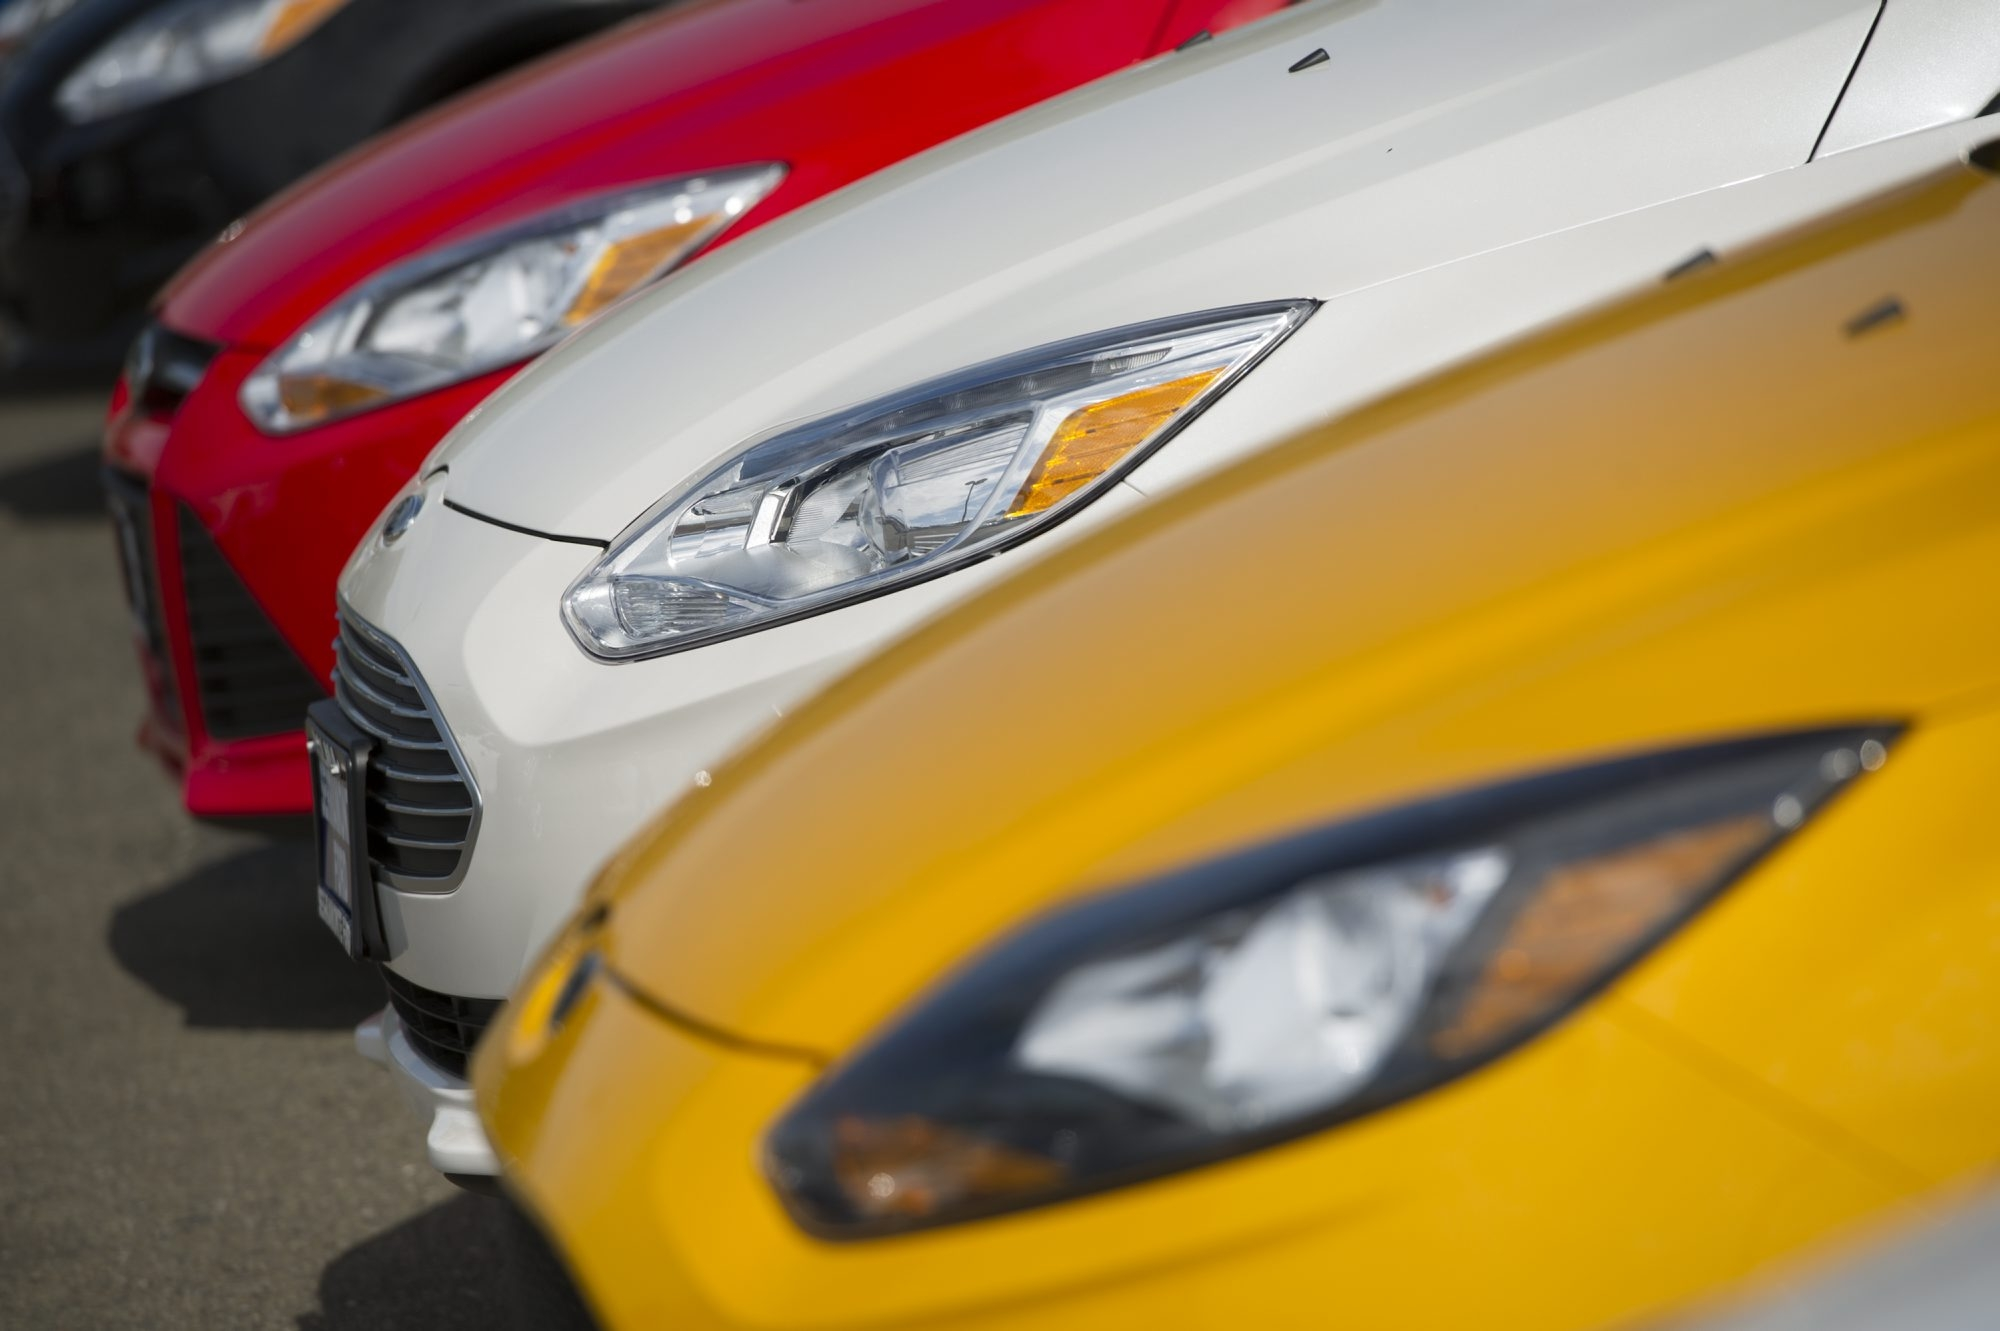 Cars sit on display for sale at the Serramonte Ford Motor Co. dealership in Colma, California, U.S., on Friday, March 29, 2013. Domestic vehicle sales data is expected to be released April 2. U.S. light-vehicle sales probably climbed 4.2 percent in March to 1.46 million, the average estimate of 10 analysts surveyed by Bloomberg. Photographer: David Paul Morris/Bloomberg